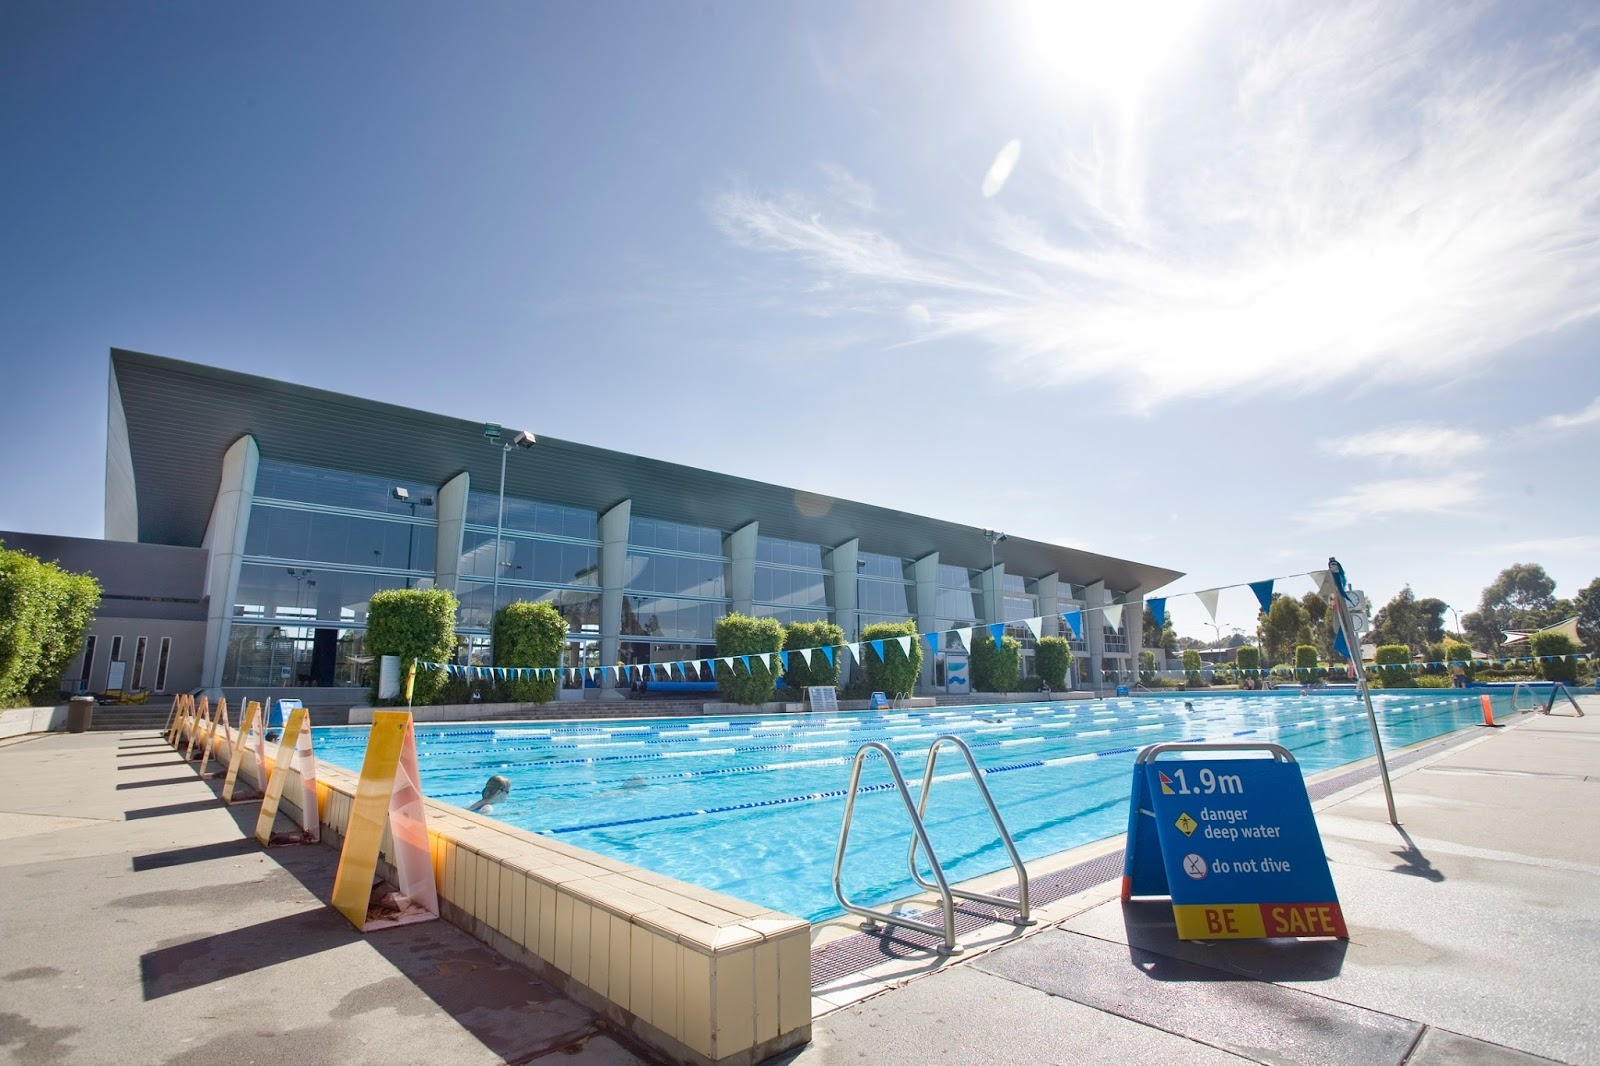 Monash Aquatic & Recreation Centre - photo